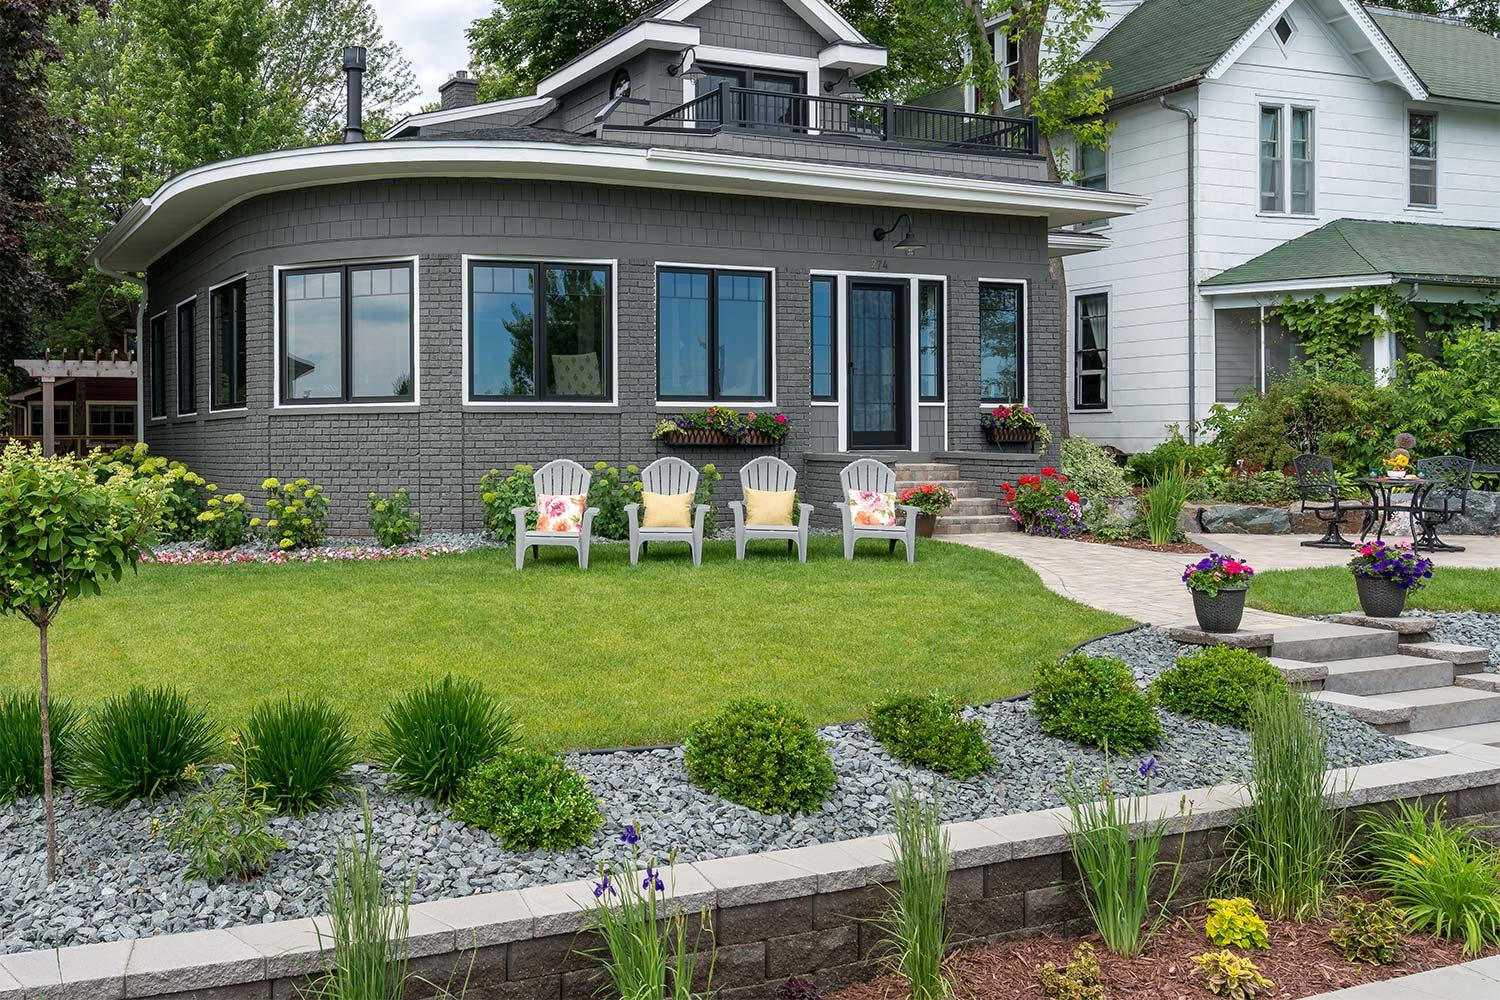 Lake Minnetonka front yard landscape design with formal garden, retaining wall, small patio and lawn with four chairs.